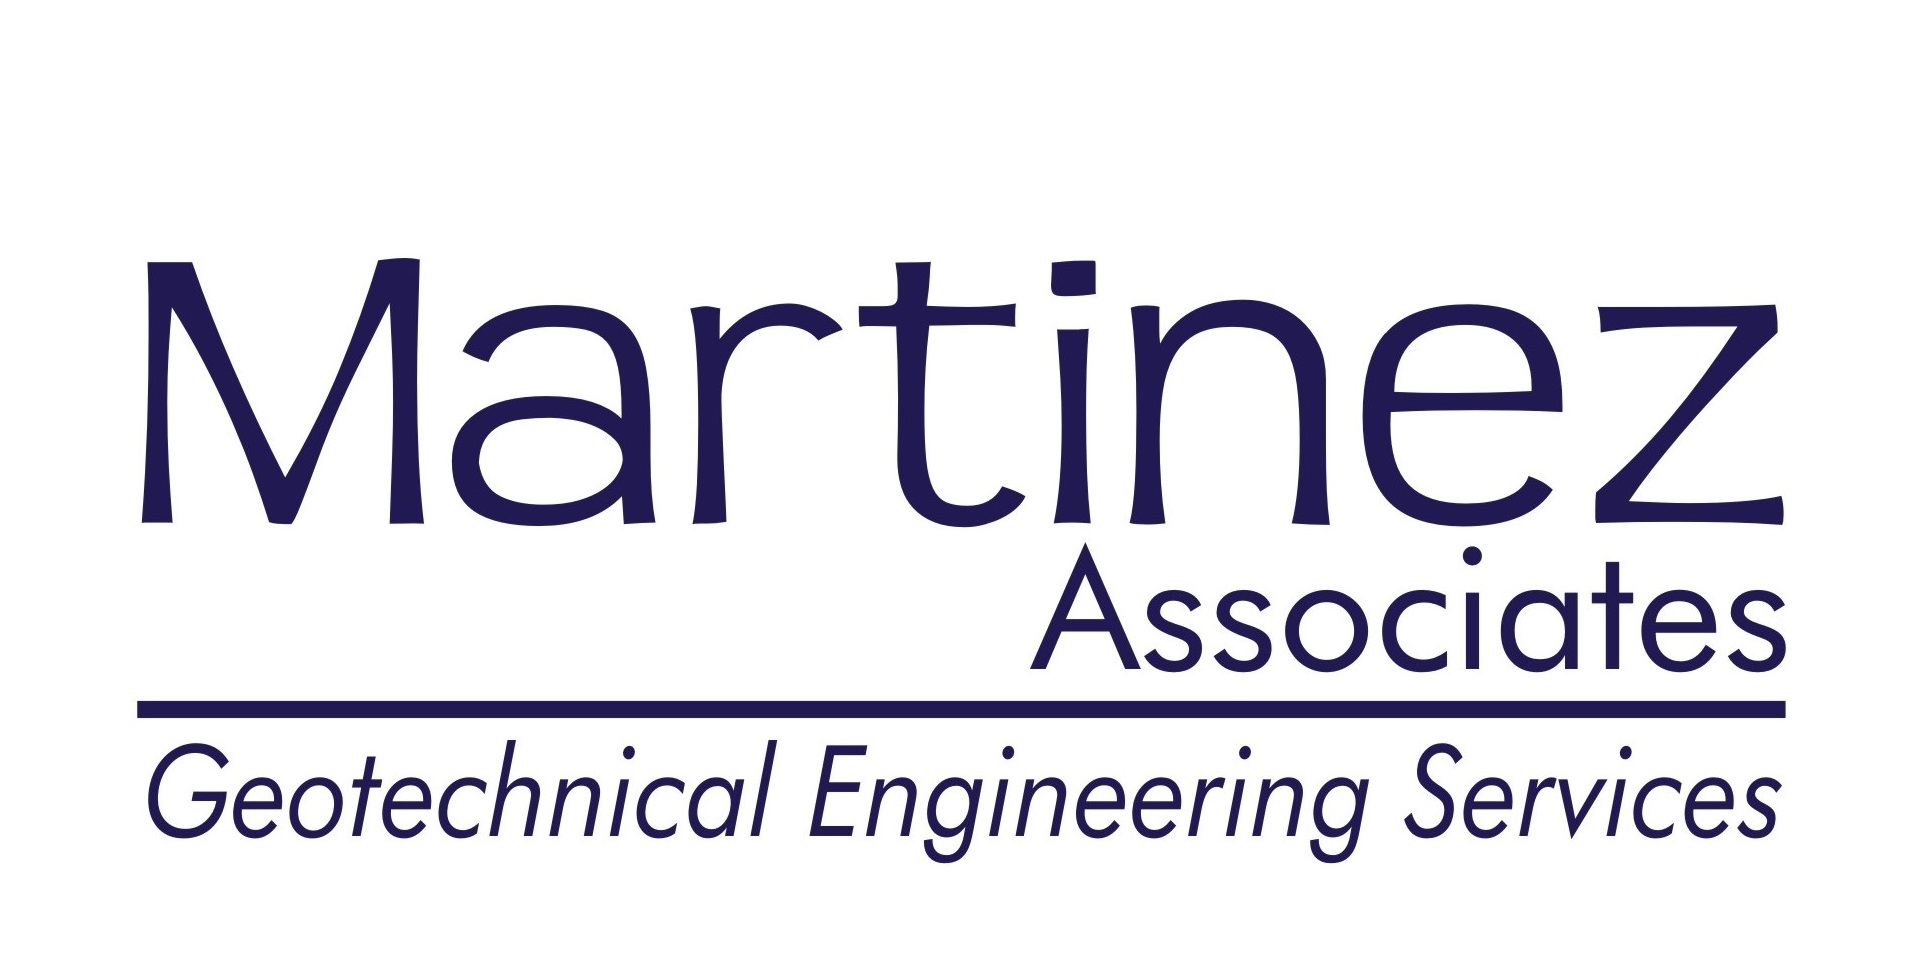 Martinez Associates, Inc.